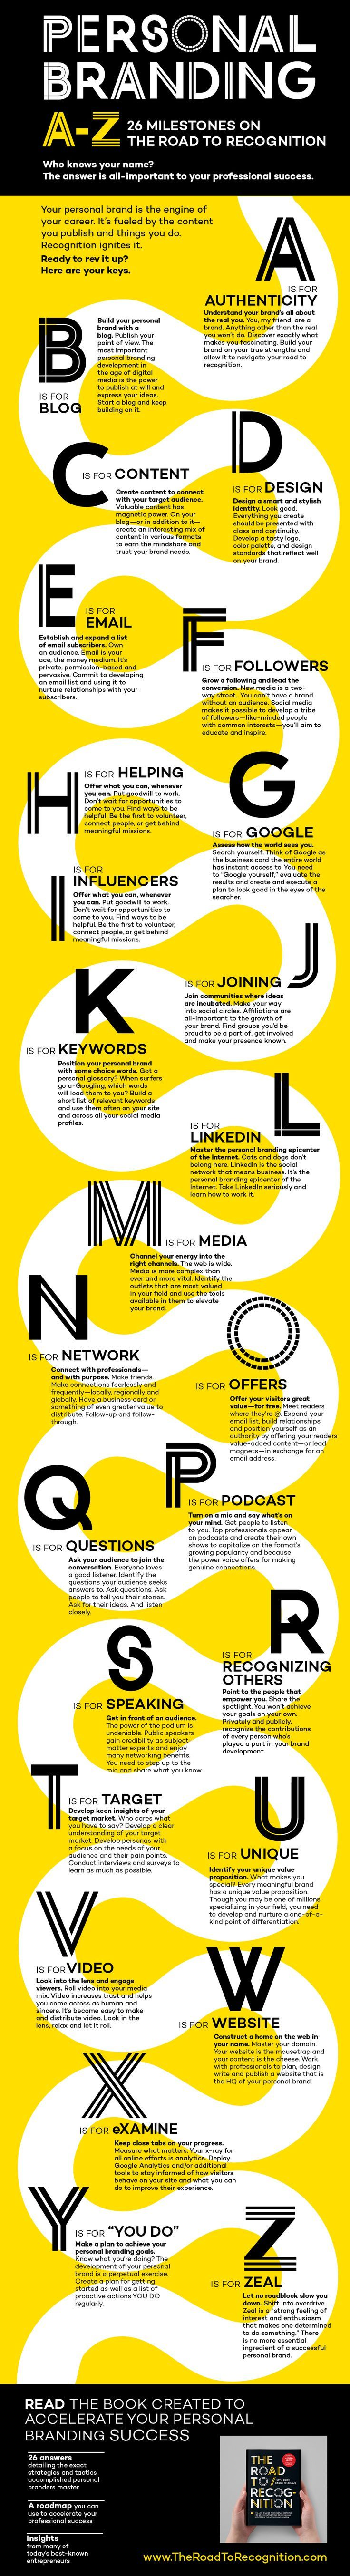 An A to Z Guide to Personal Branding | Convince and Convert: Social Media Consulting and Content Marketing Consulting. If you like UX, design, or design thinking, check out theuxblog.com